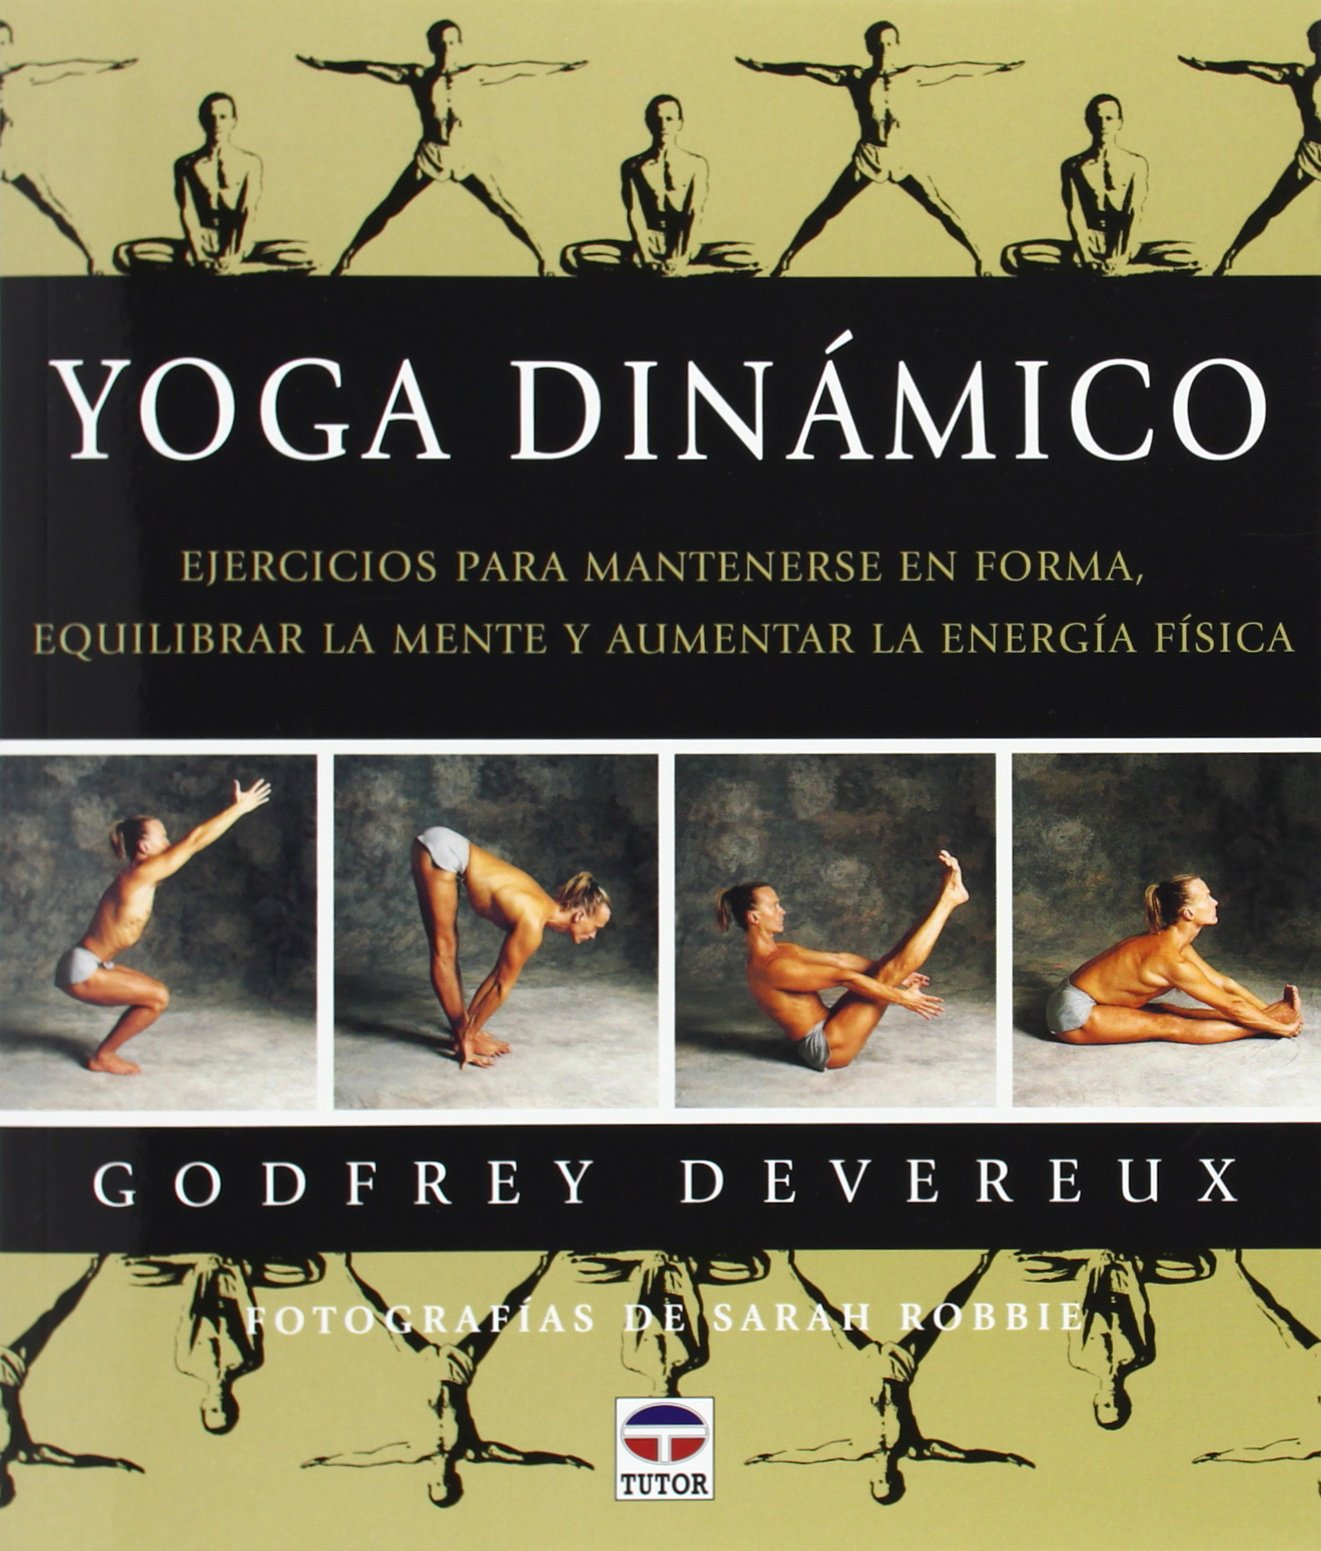 Yoga Dinamico: Amazon.es: Godfrey Devereux: Libros